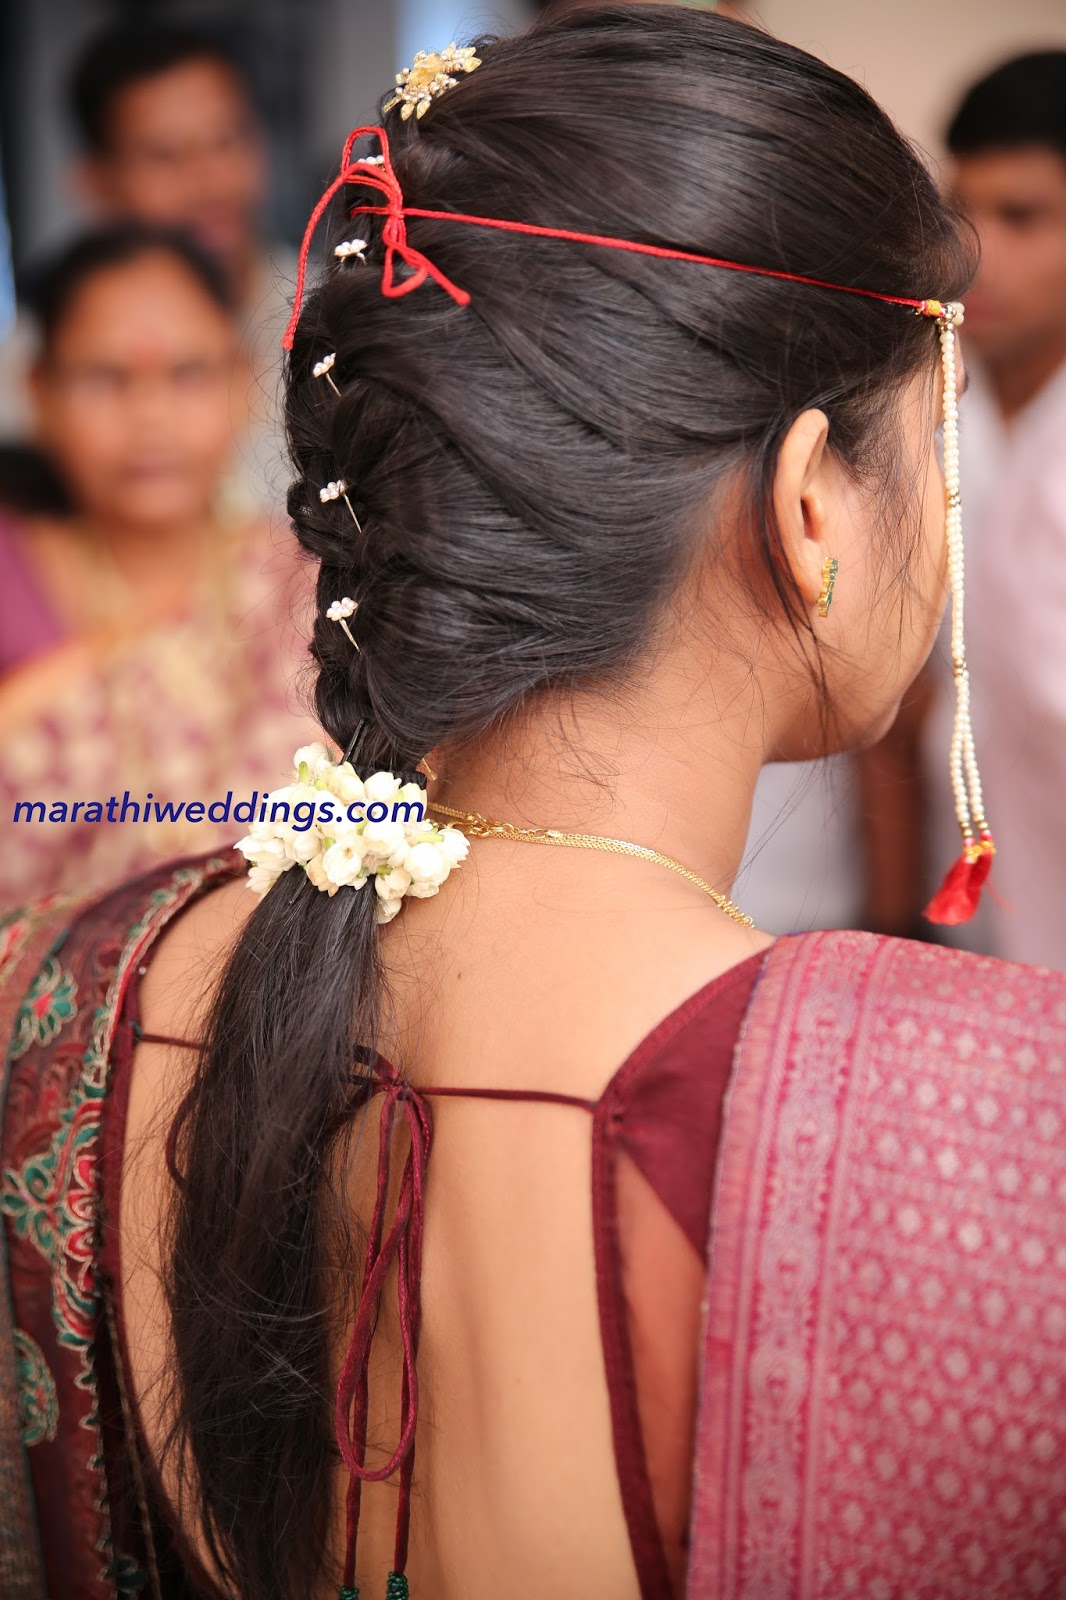 Indian mom with bun hairstyle - 4 10